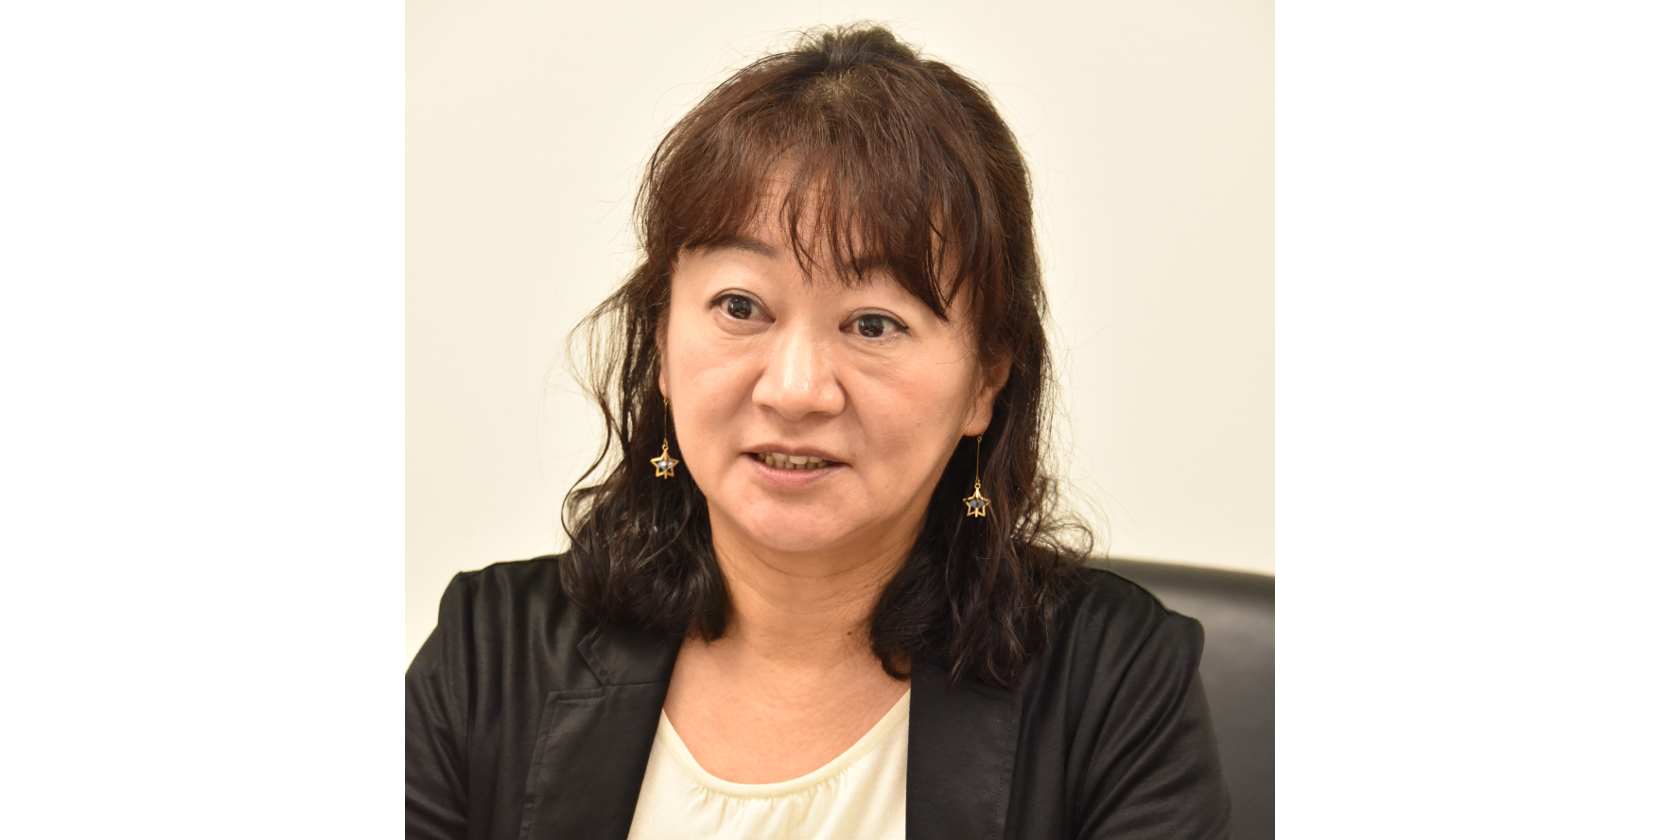 Interview: Mandom Executive Officer Misao Tsubakihara Talks Company Achievements, Market Challenges